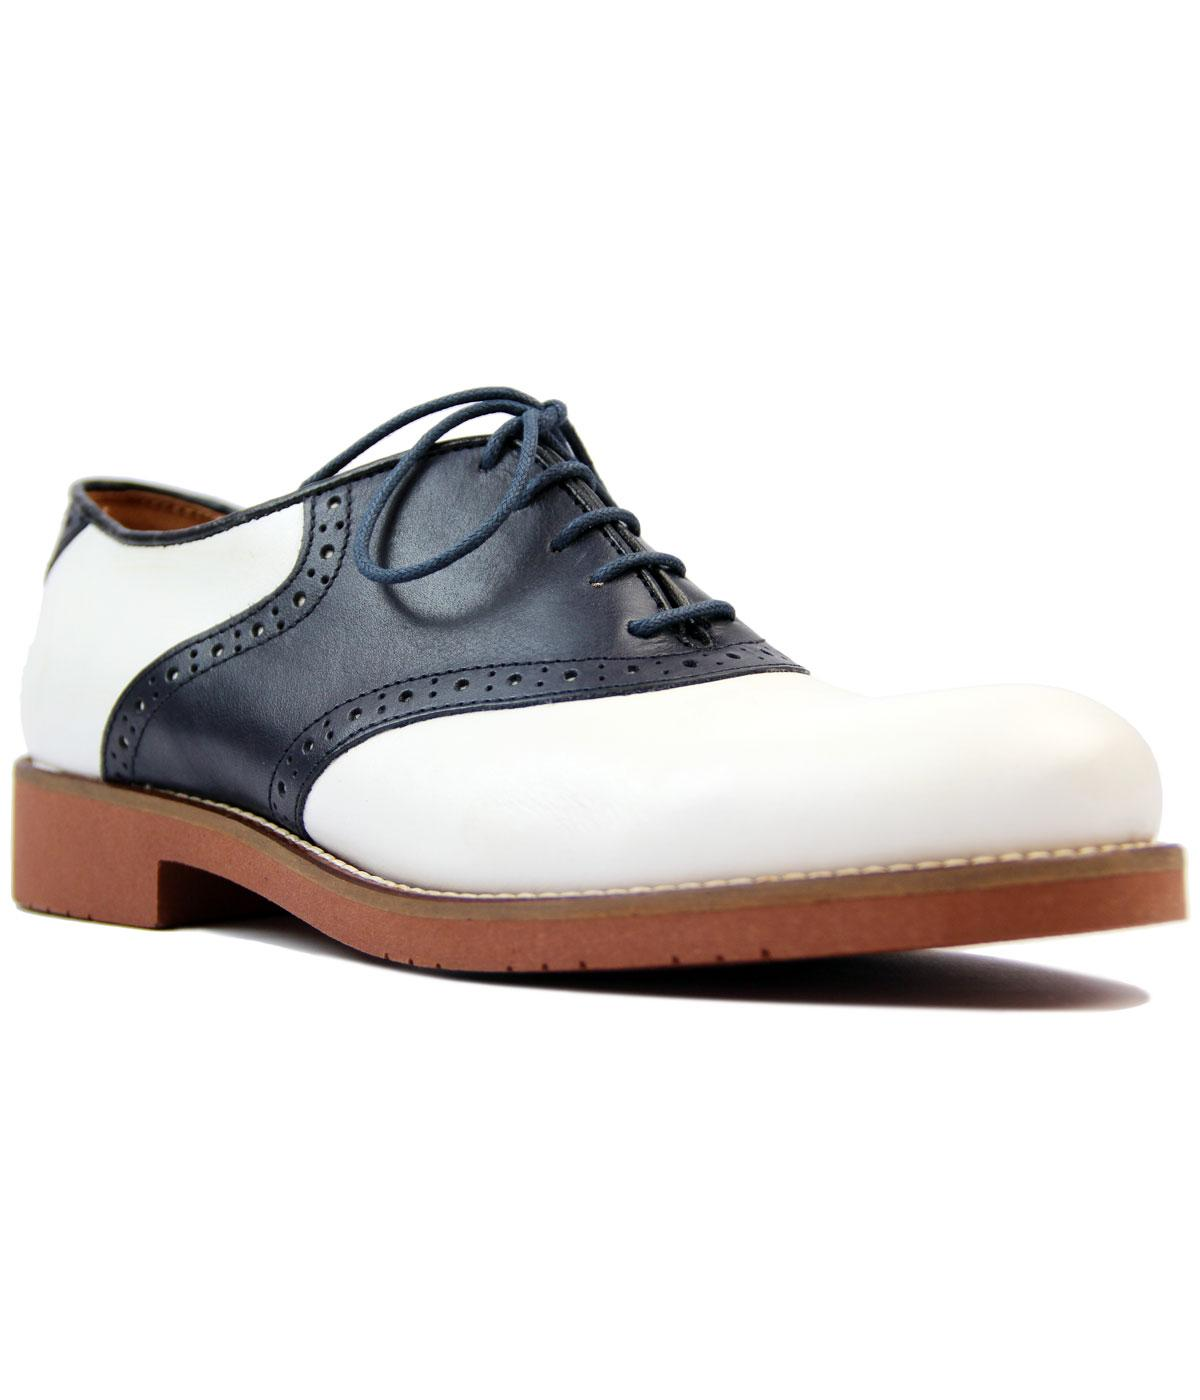 Albany BASS WEEJUNS Retro 60s 2 Tone Saddle Shoes